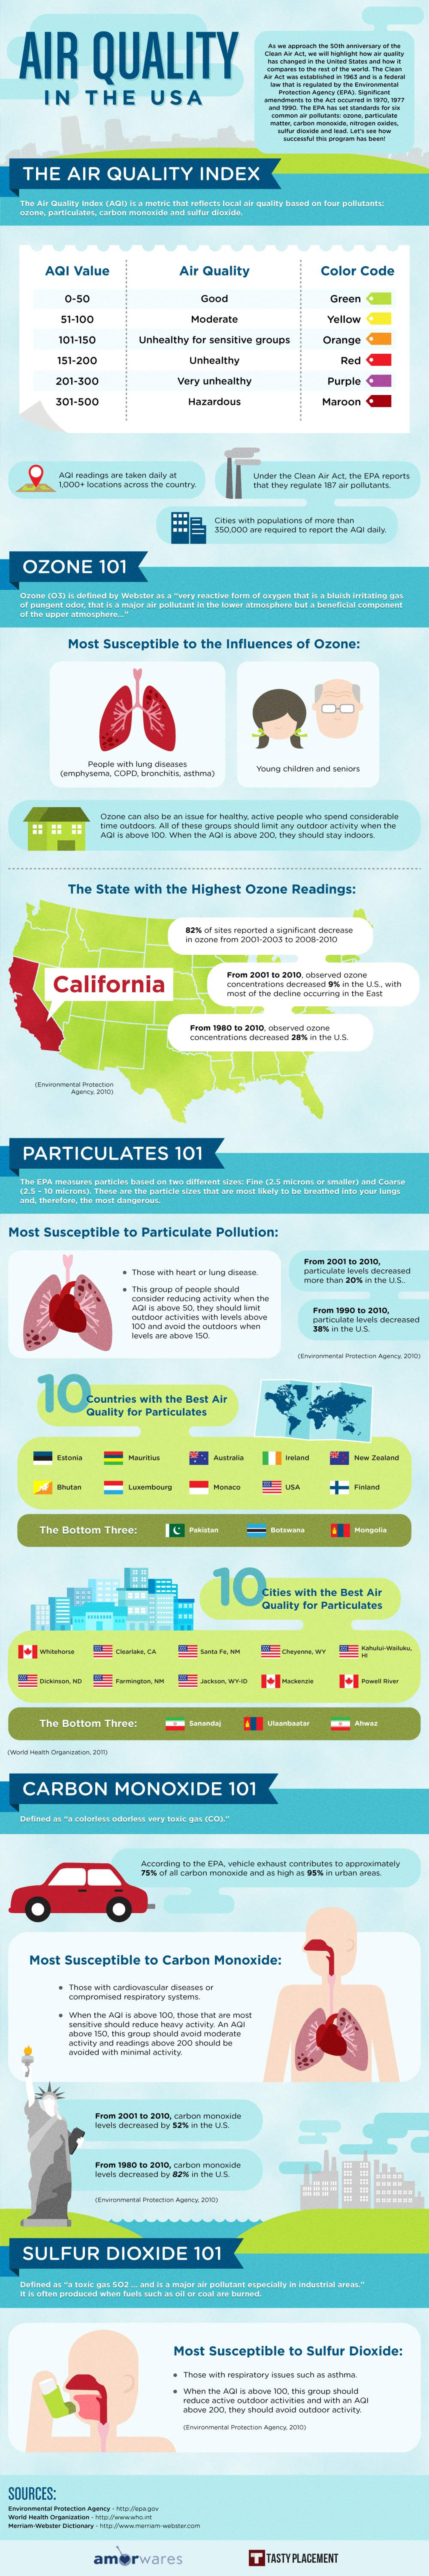 Air Quality in the USA Infographic